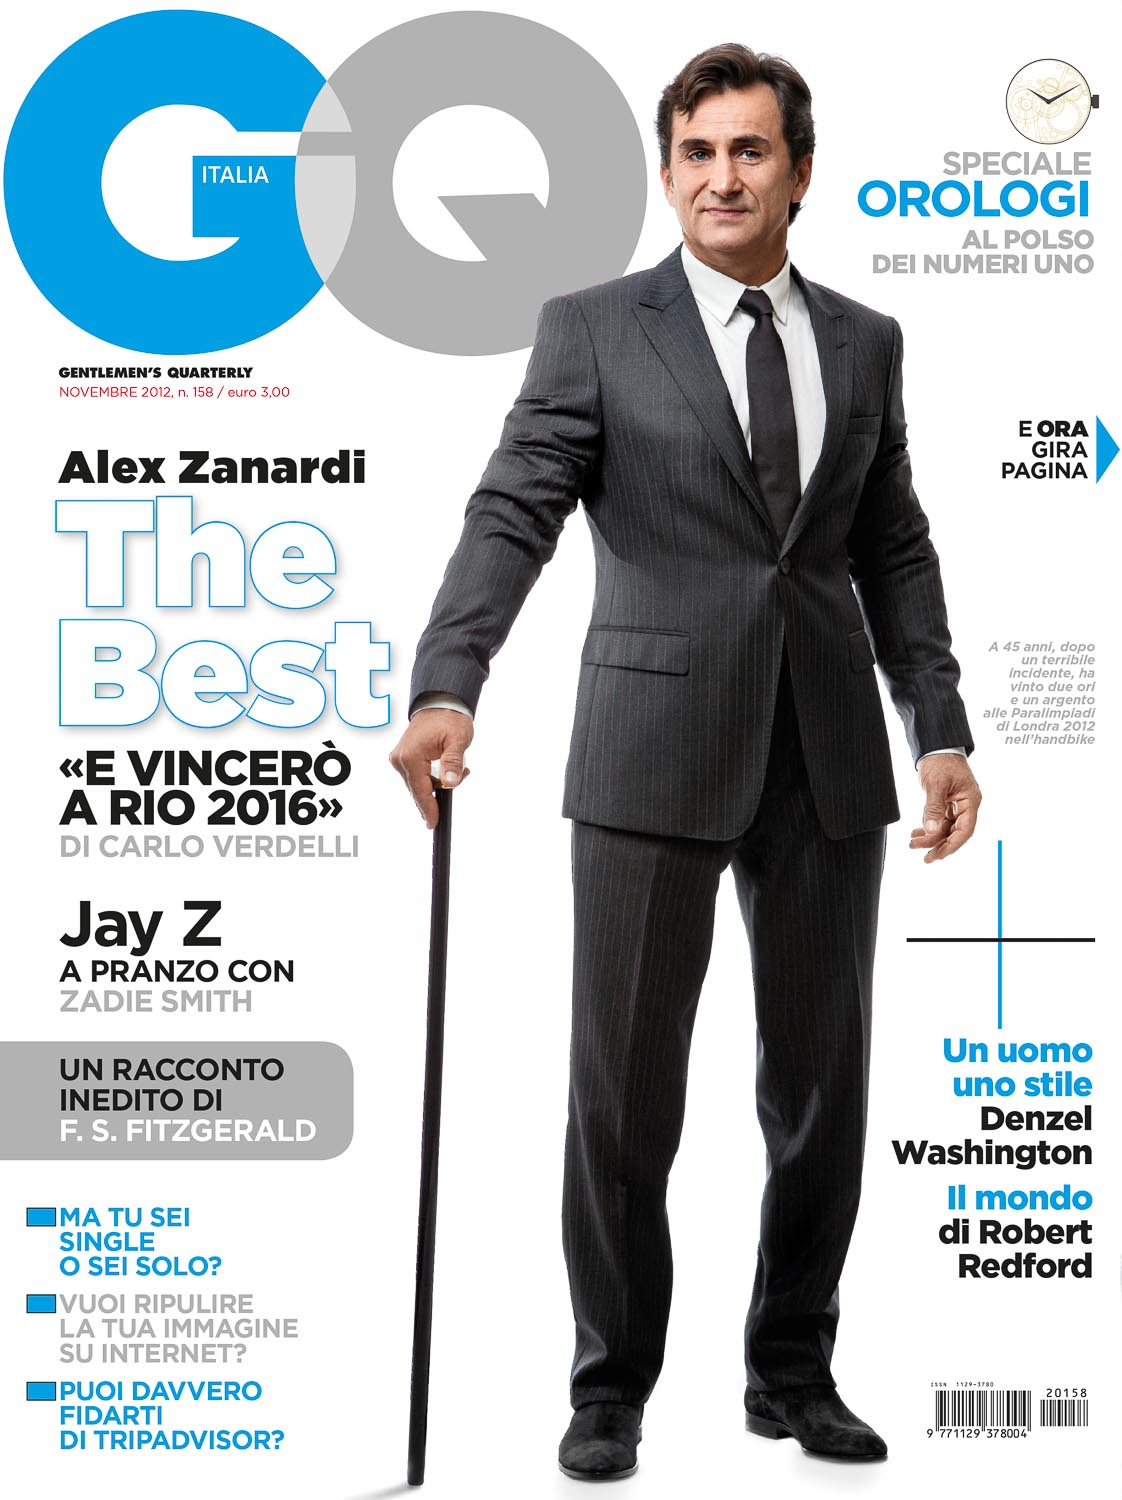 GQ 58 COVER e BATTENTE okokOK.jpg